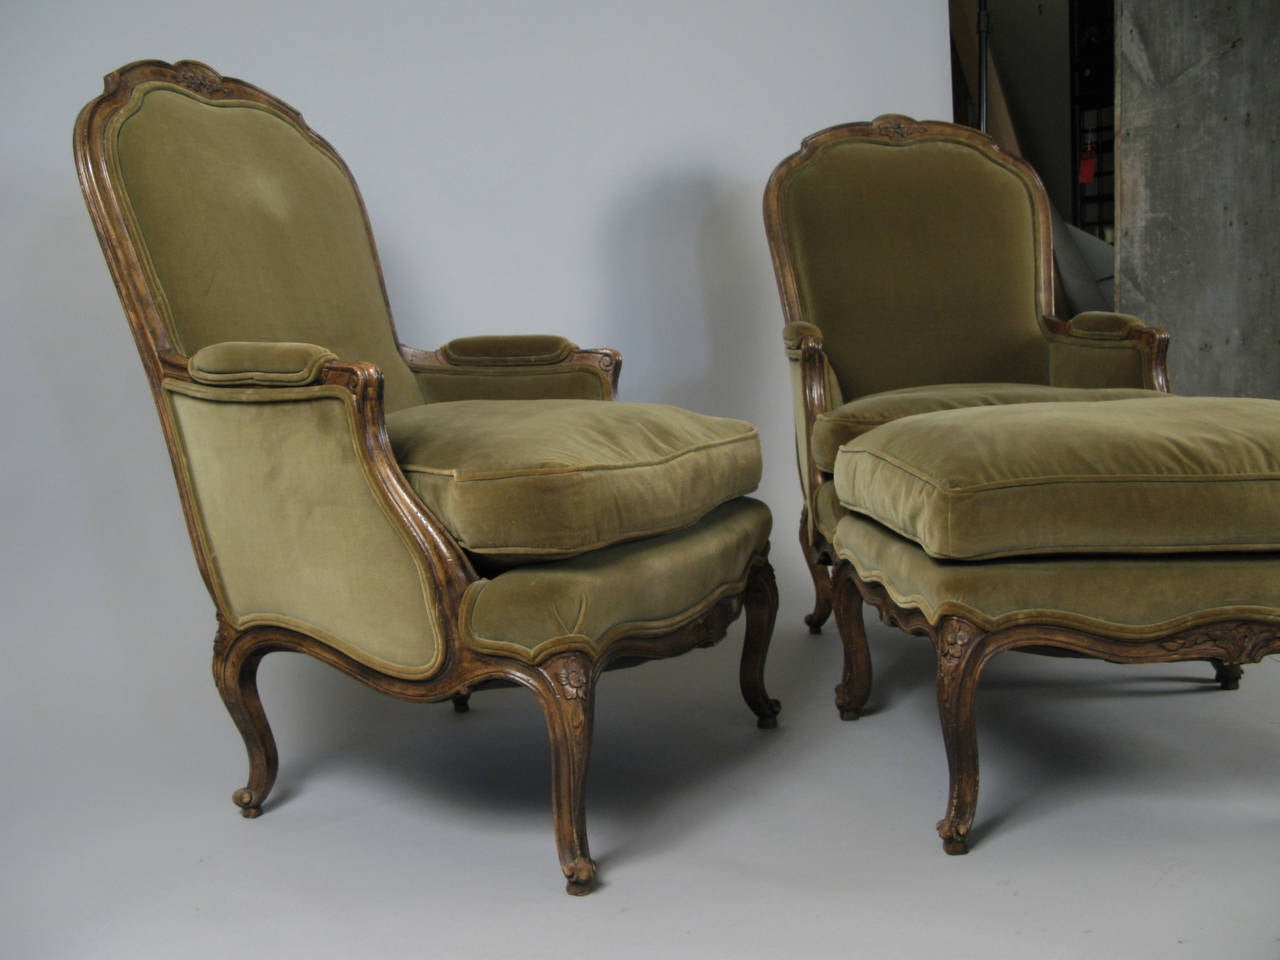 french provincial chair and ottoman ice fishing with rod holder pair of style velvet lounge chairs at